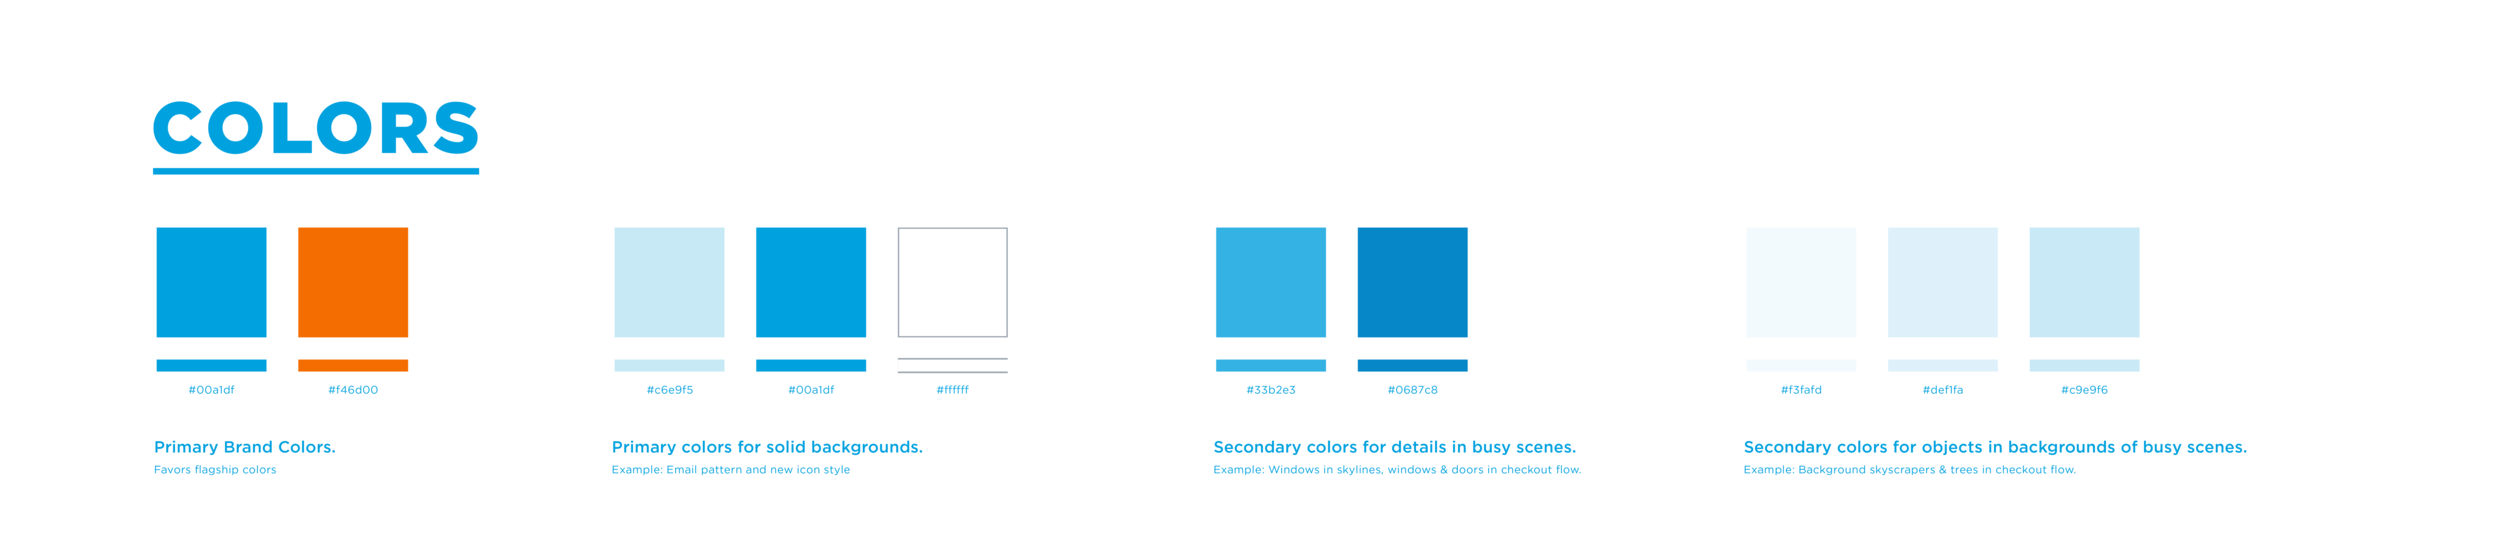 brand - colors@2x.png